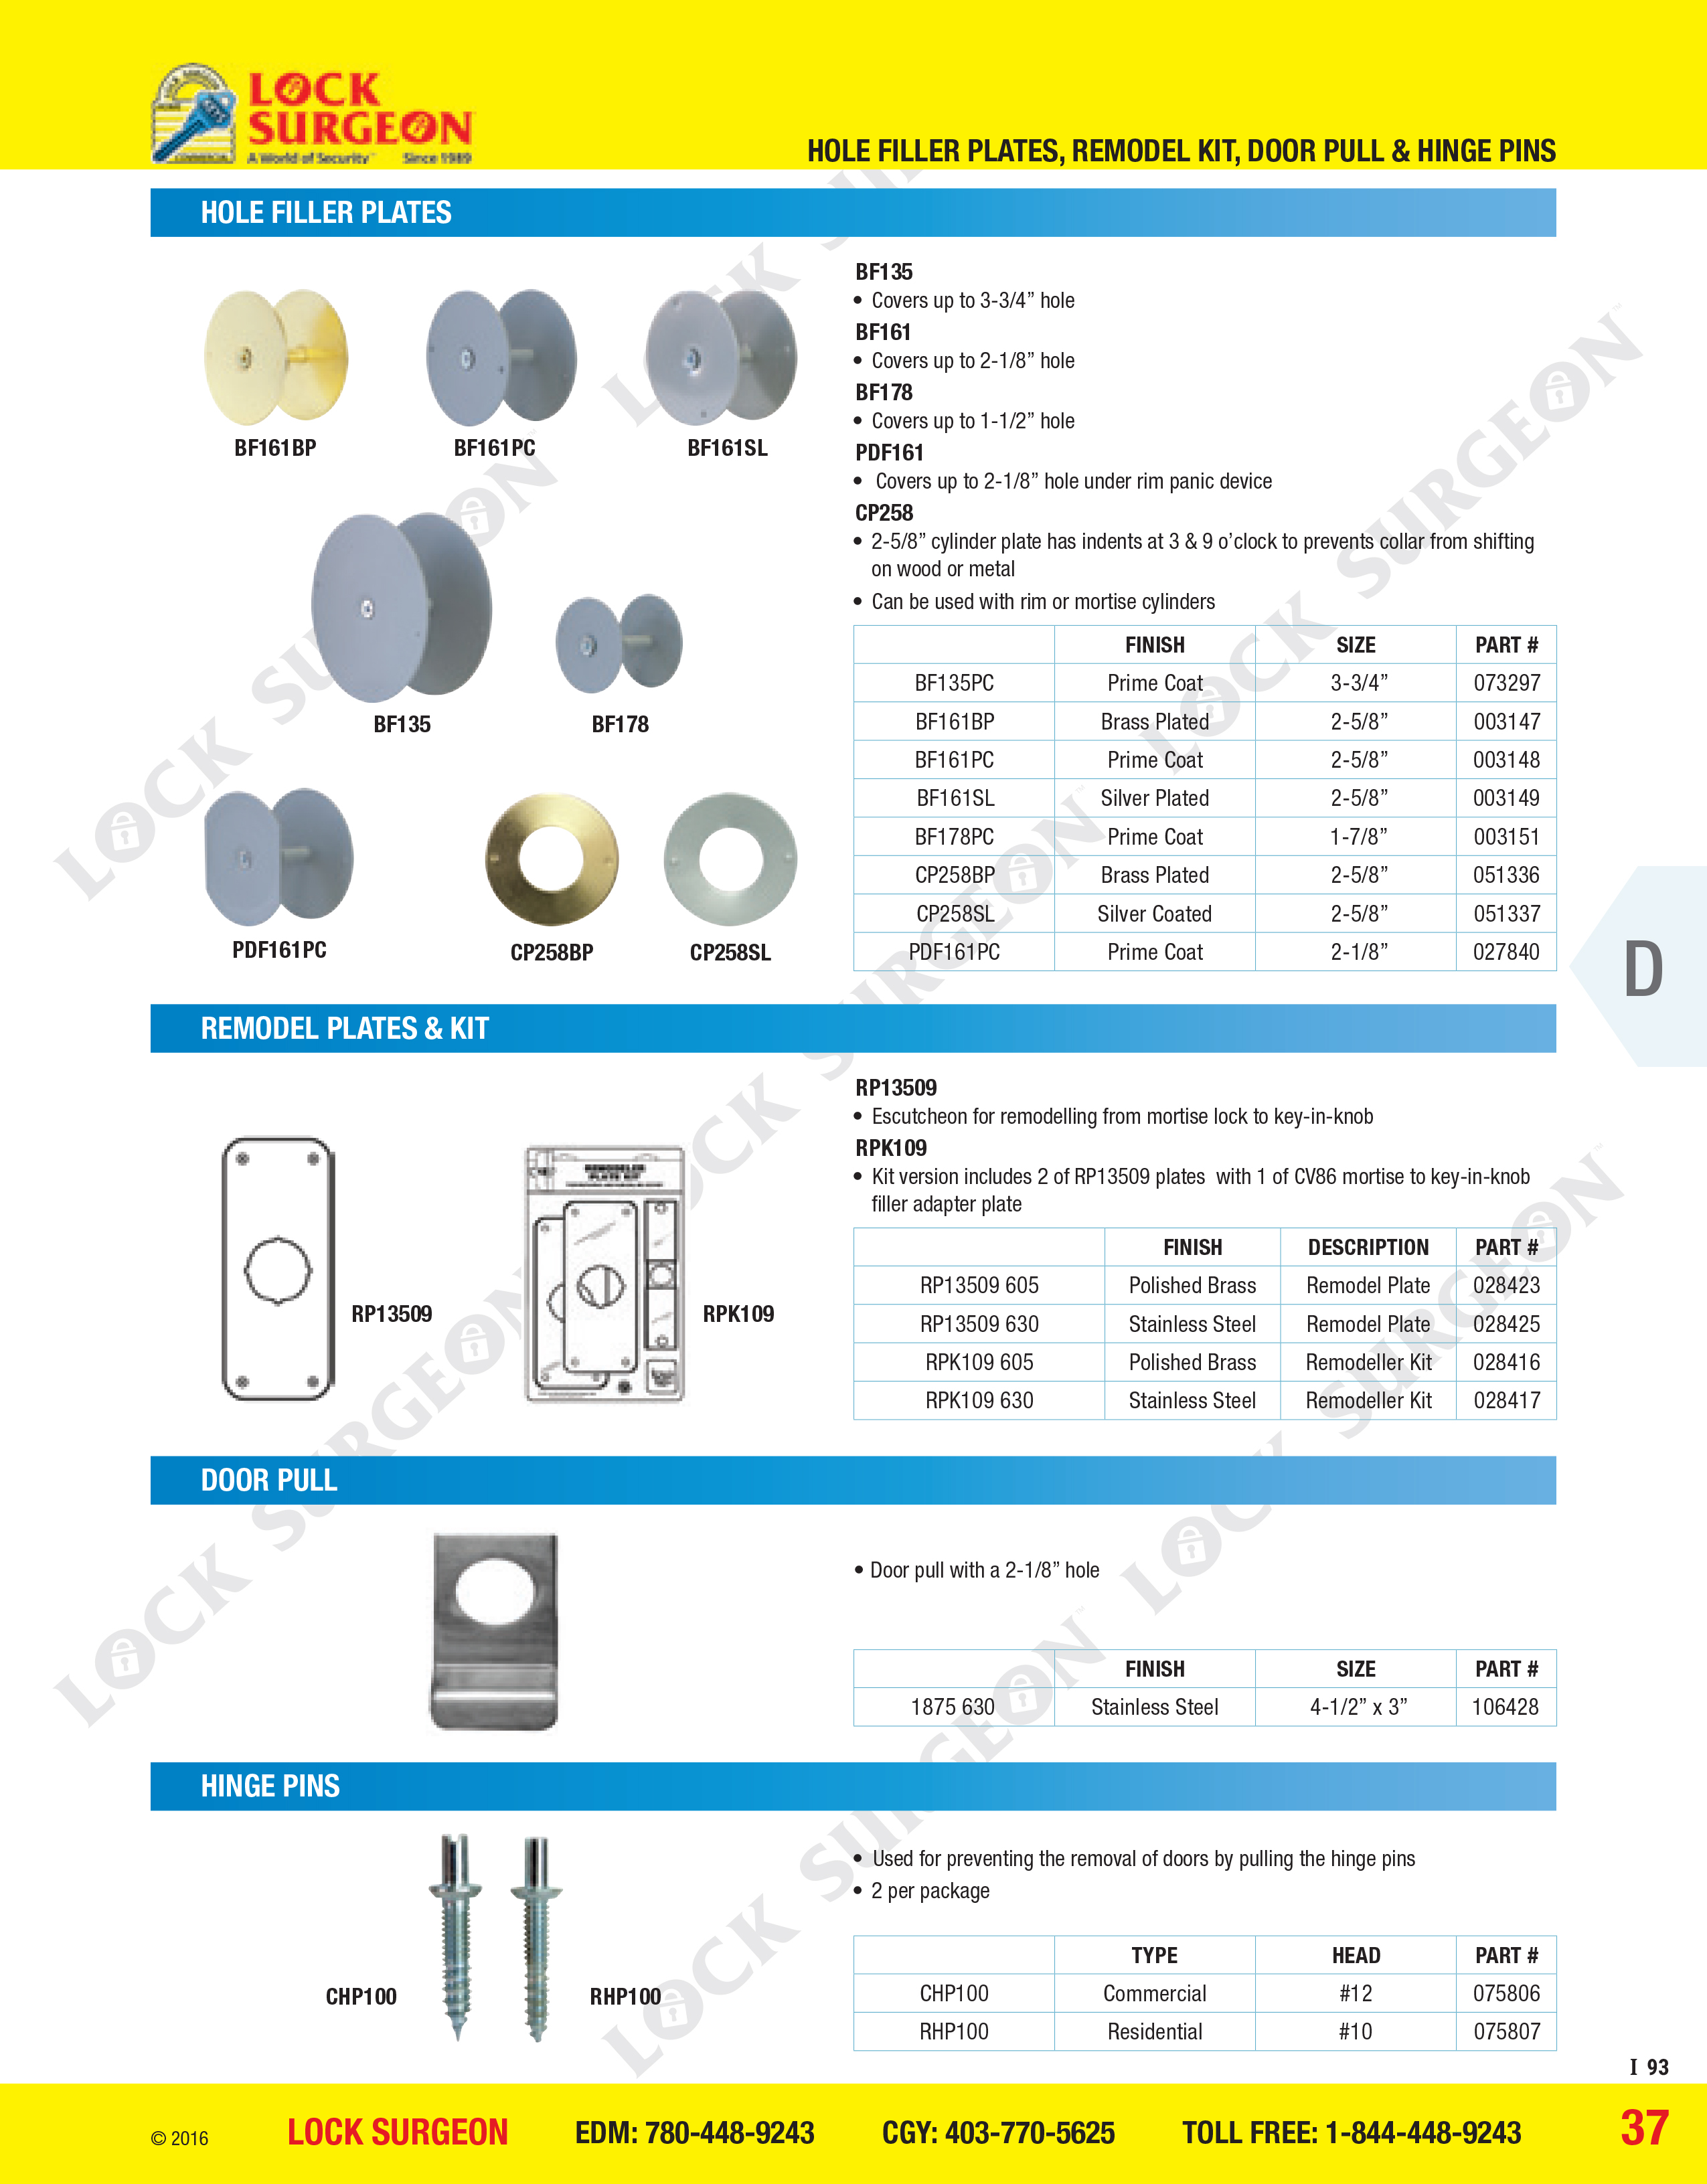 Hole filler plates, remodel plates kit, door pulls hinge pins